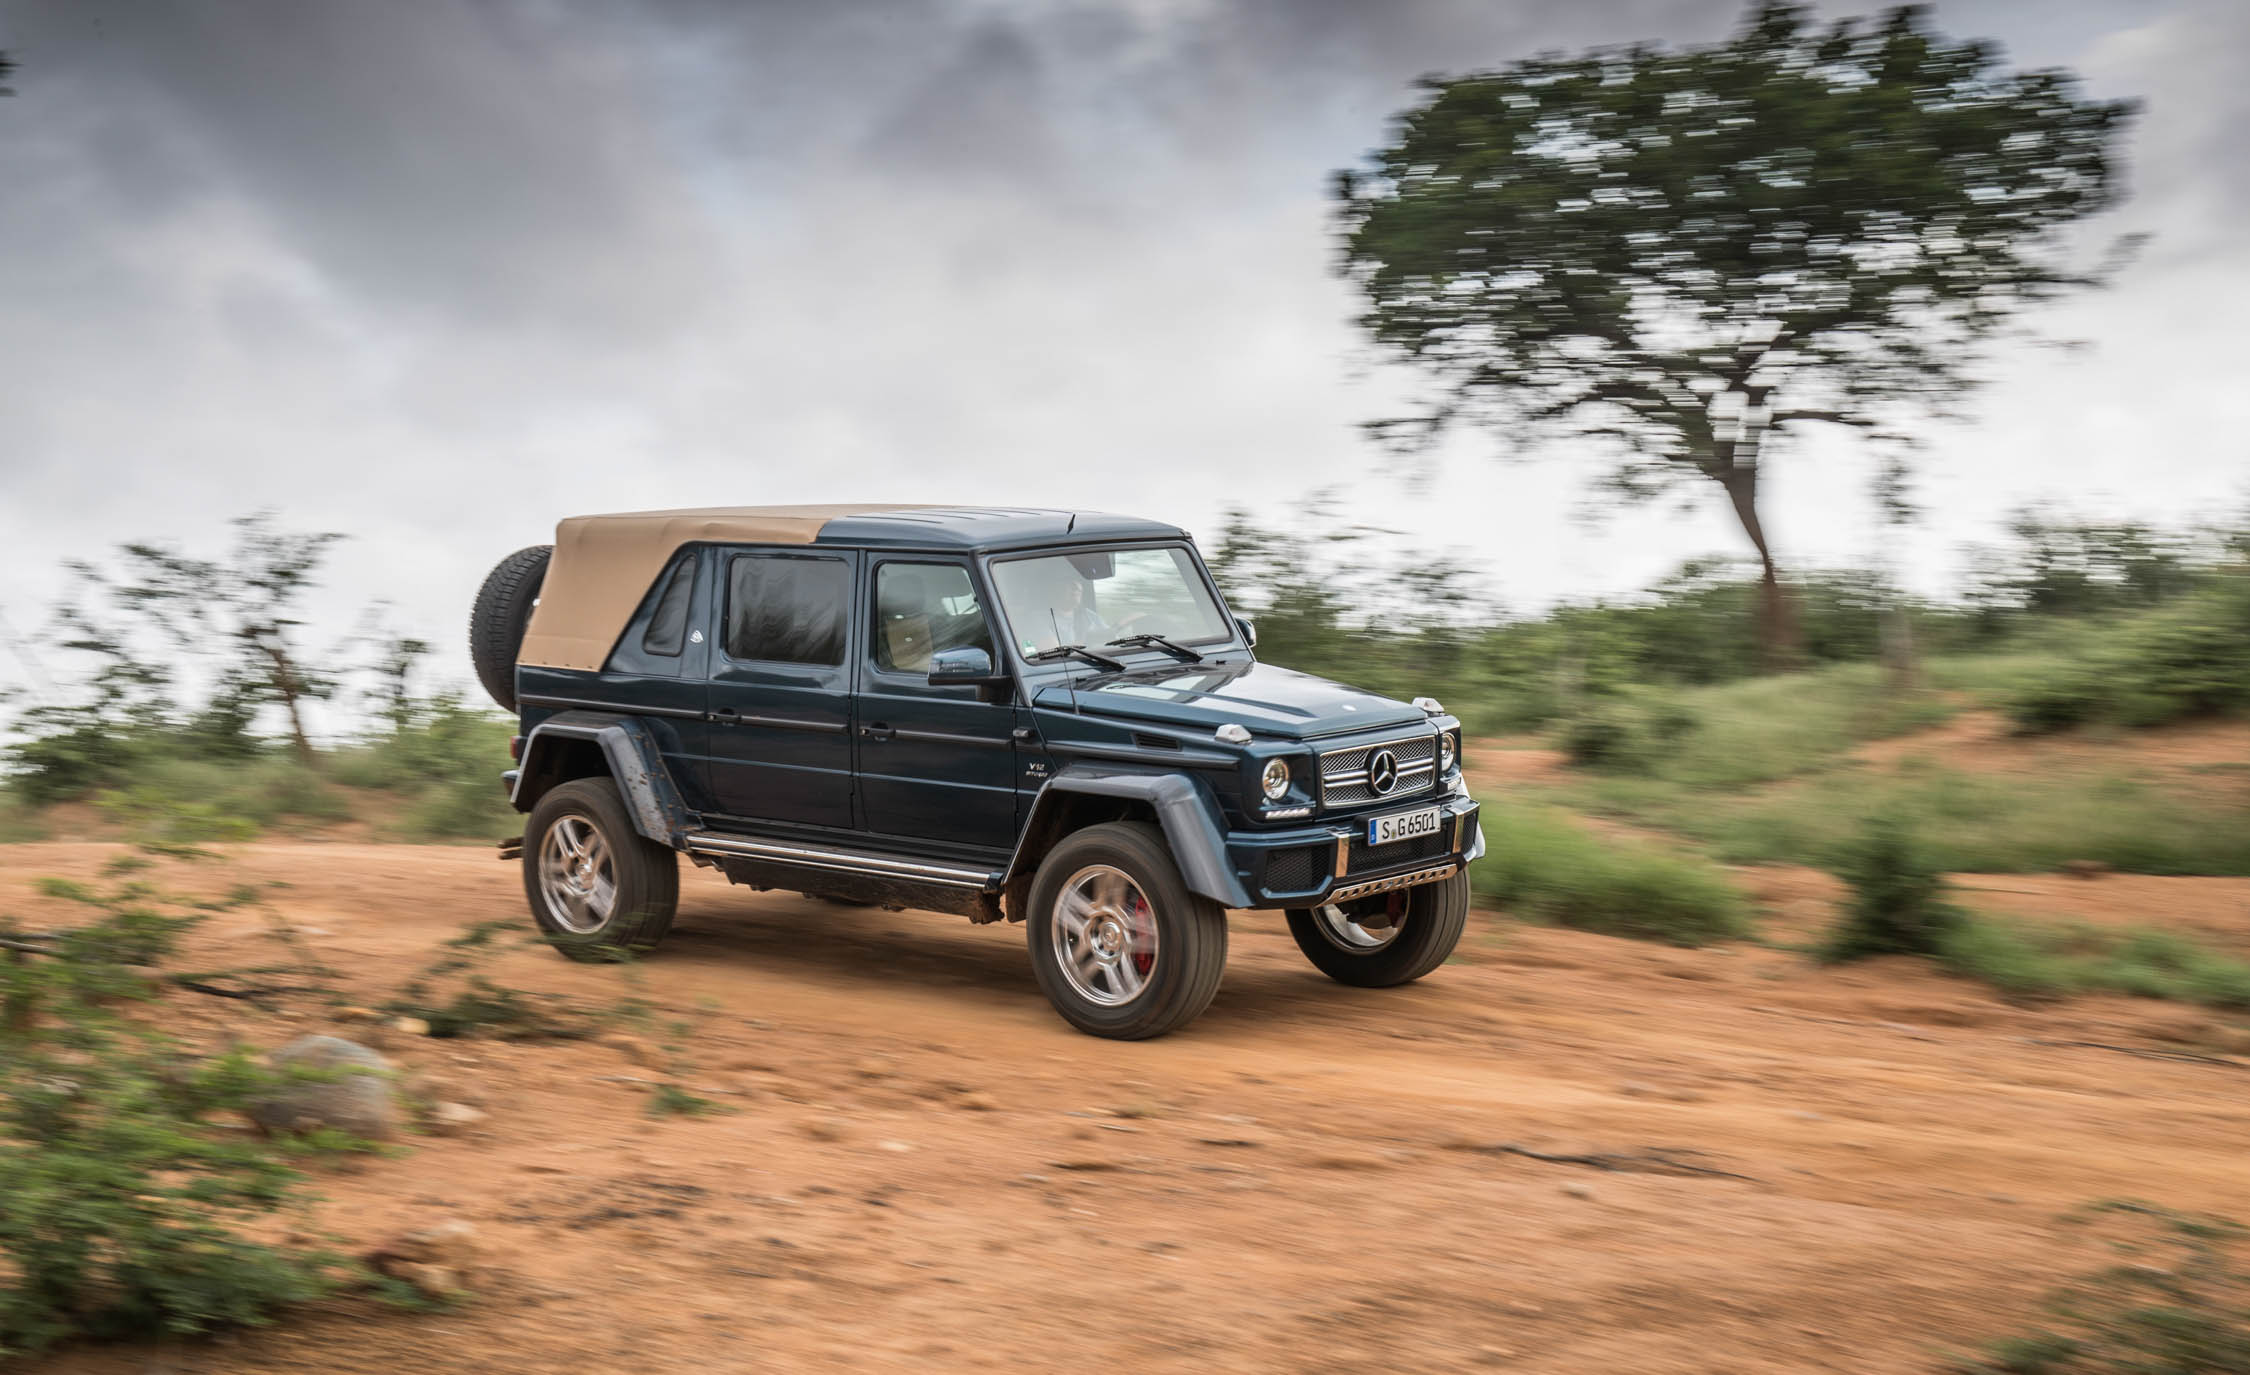 2018 Mercedes Maybach G650 Landaulet Test Drive Side View (Photo 11 of 52)